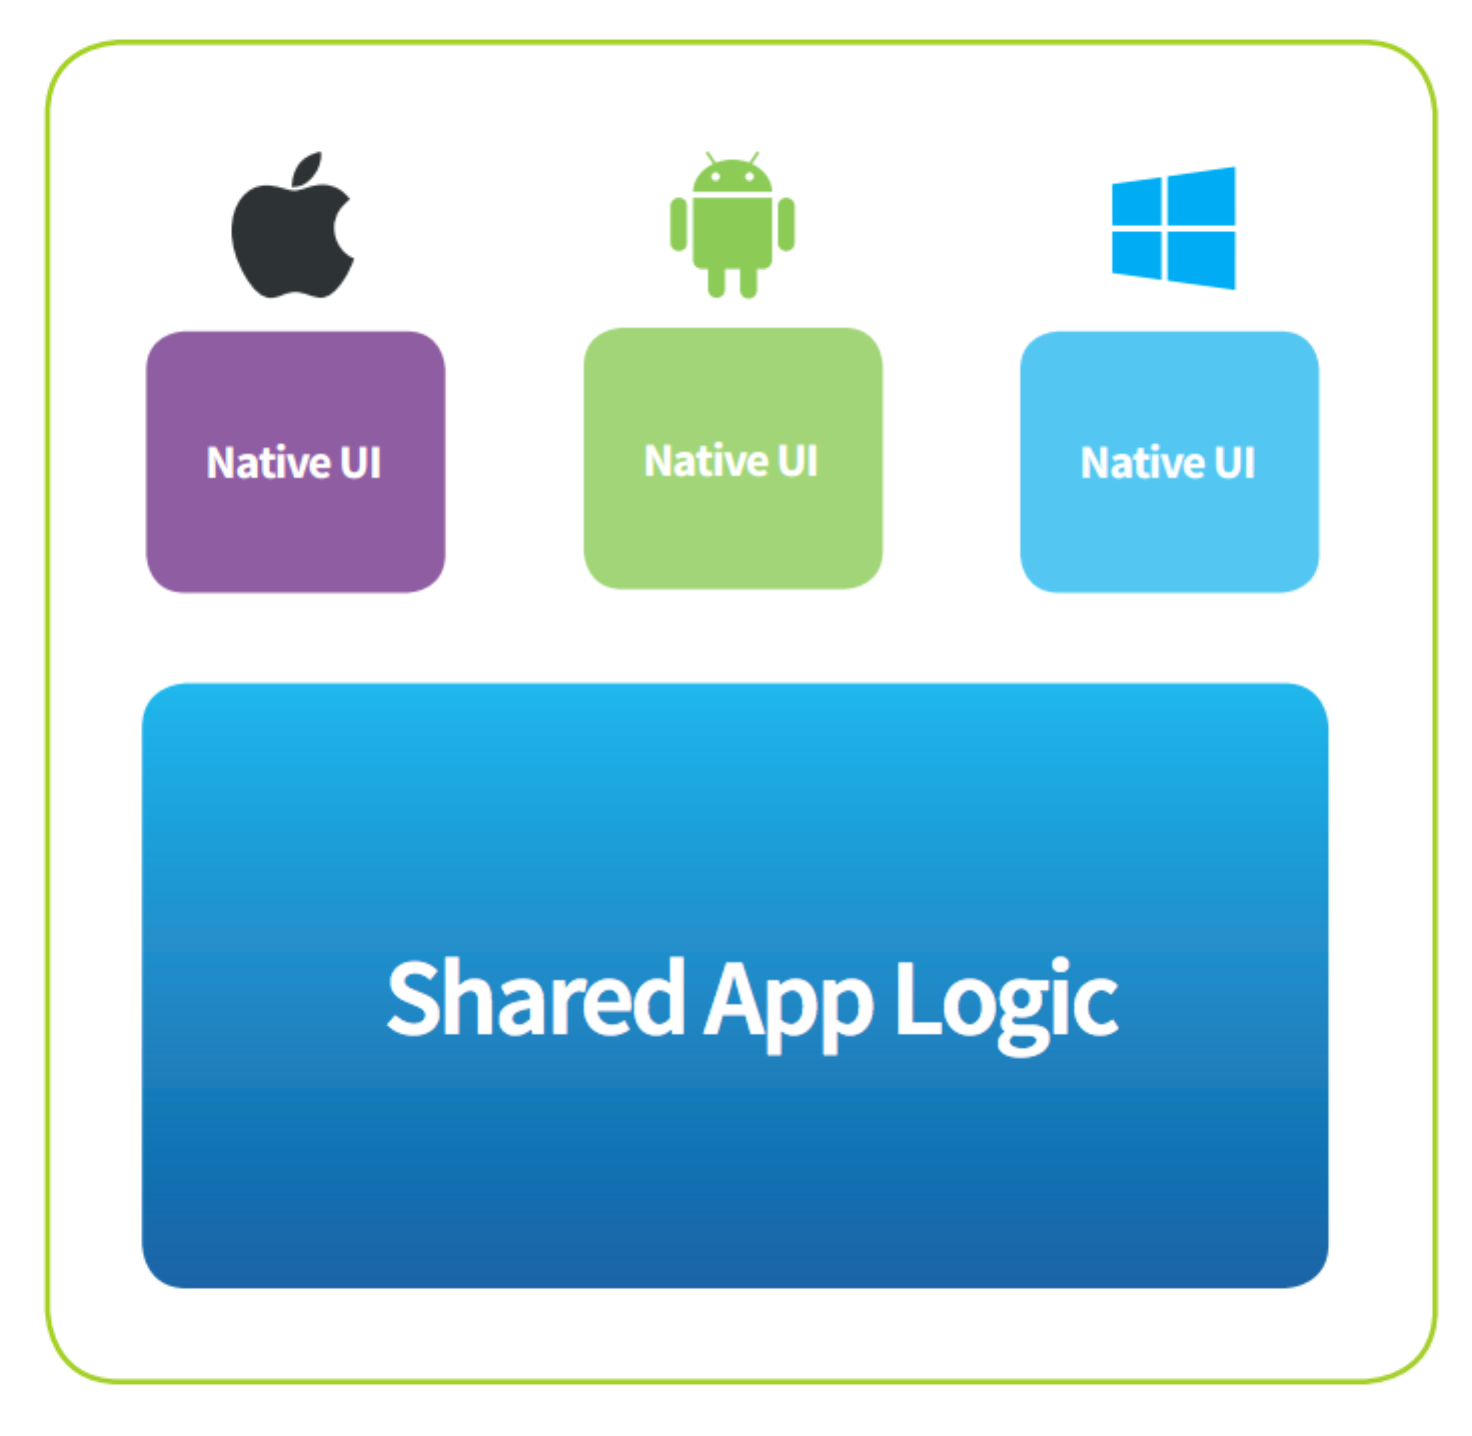 Xamarin promotes shared application logic across navtive UIs